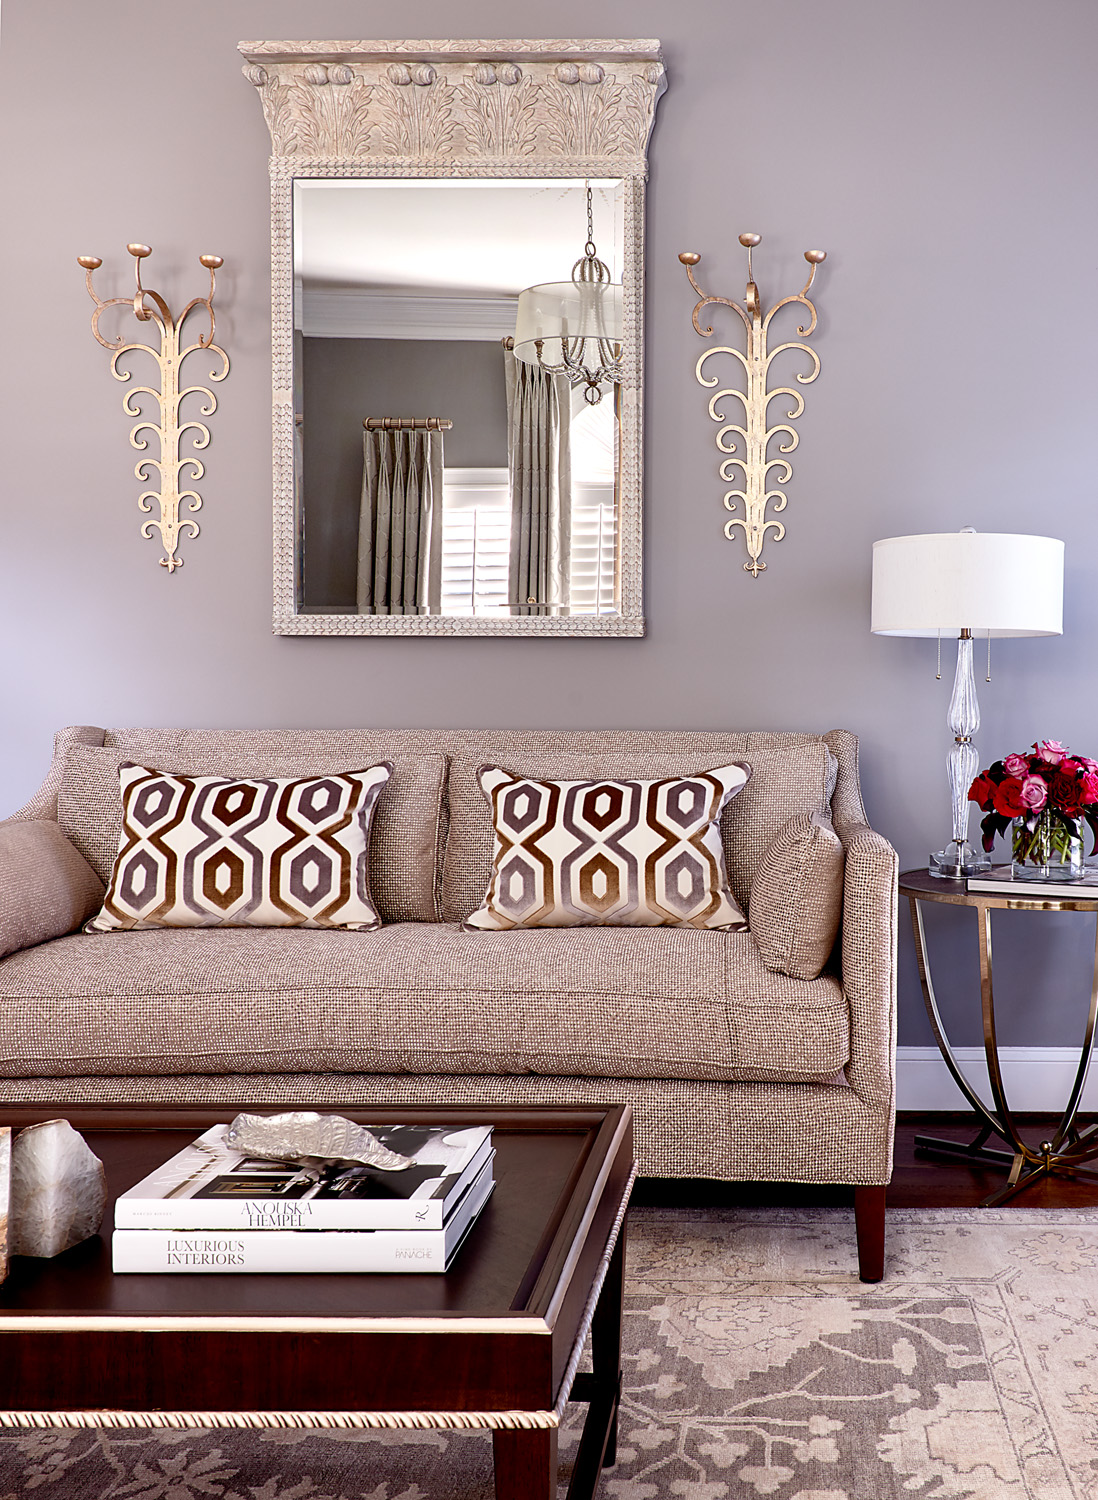 Living room with taupe modern sofa and cut velvet pillows and pediment mirror with scrolled sconces